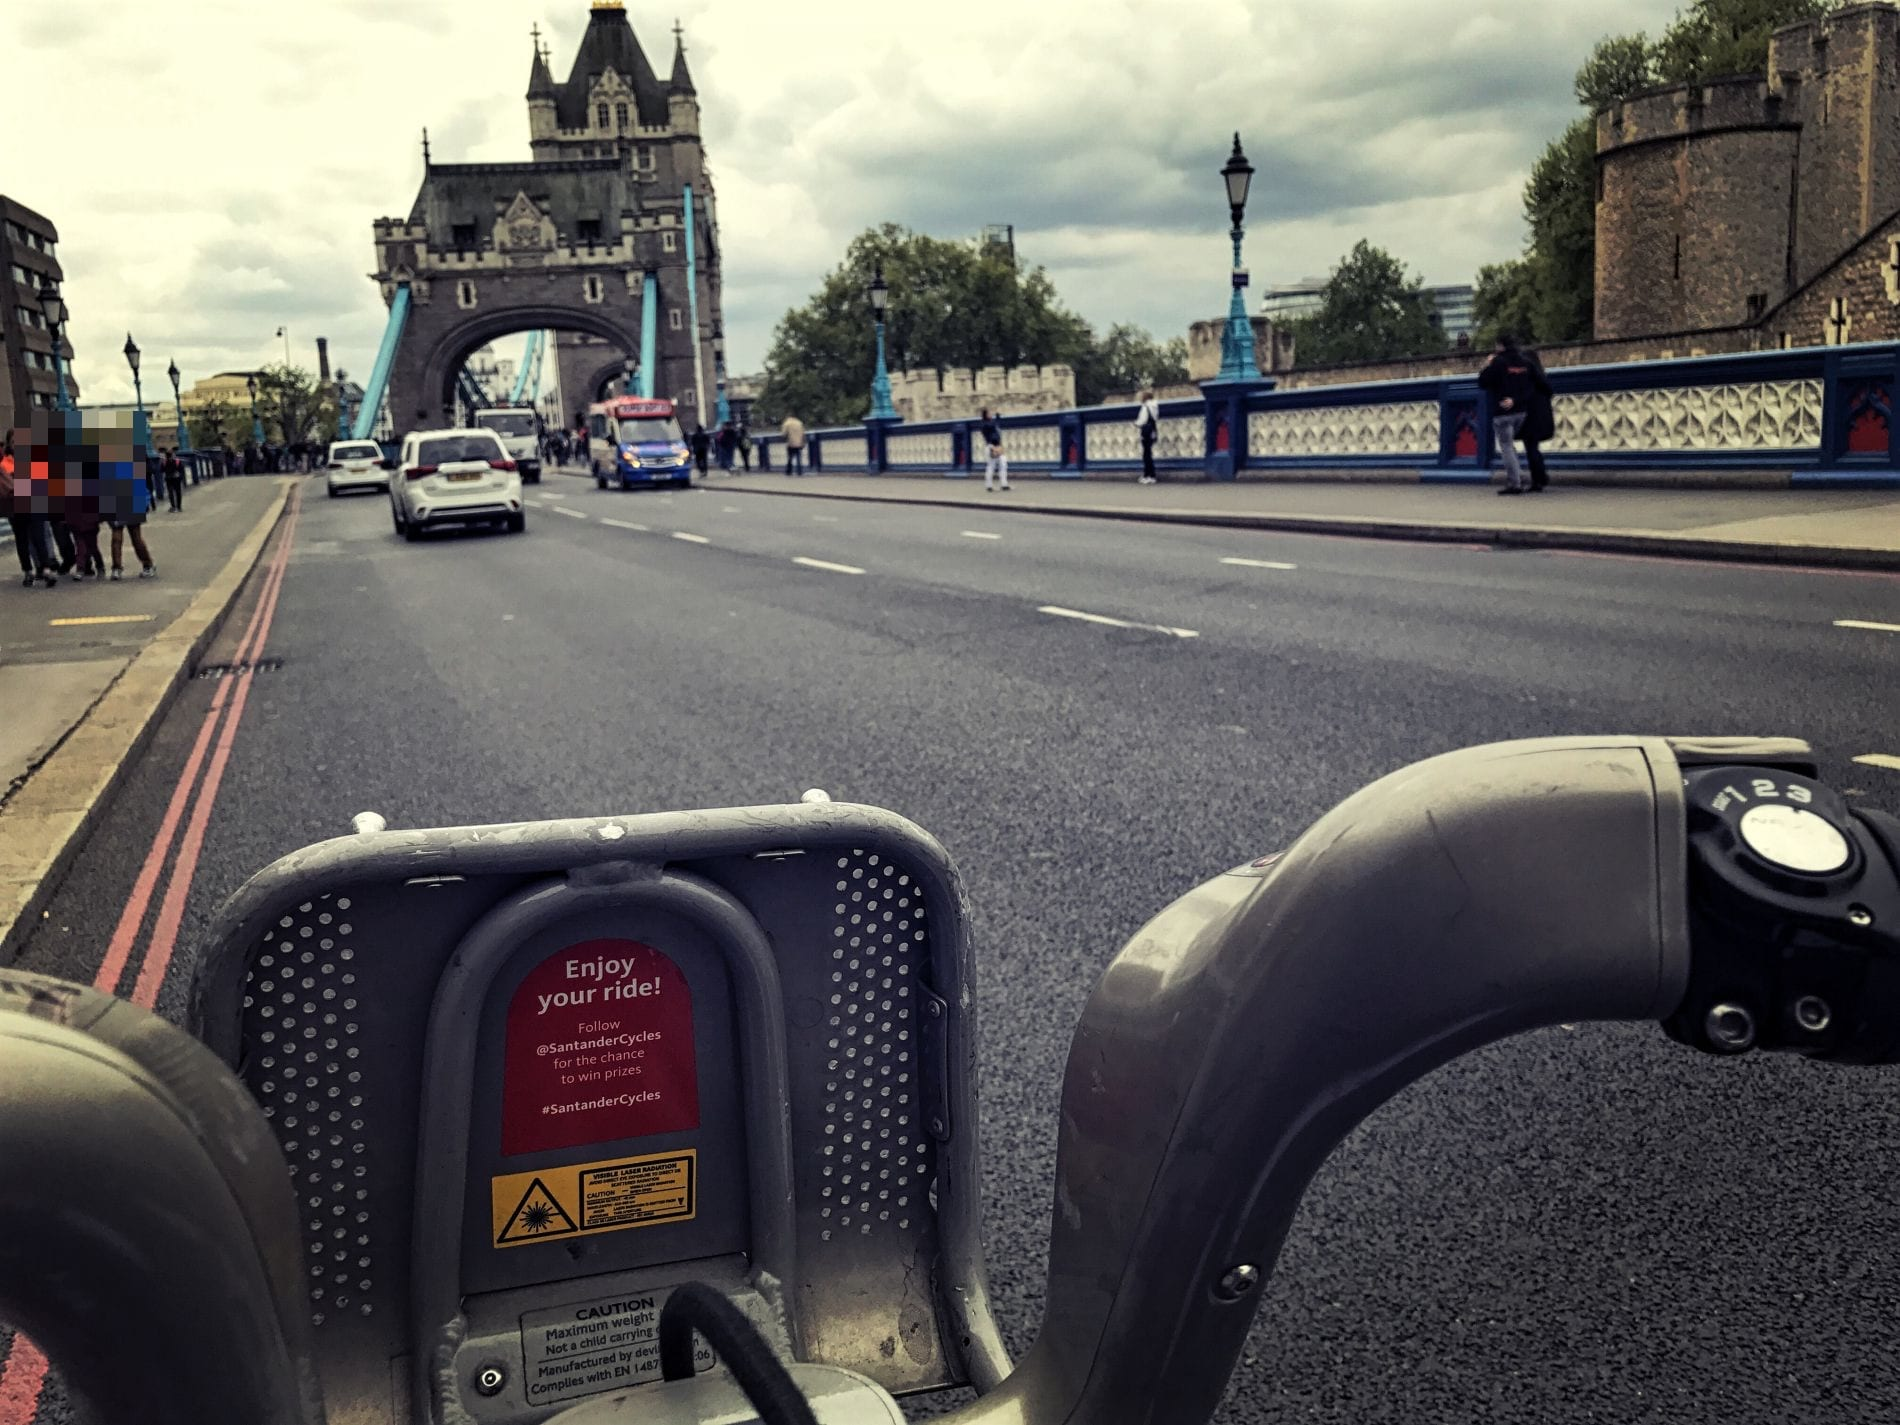 fahrrad-ausleihen-london-tower-bridge